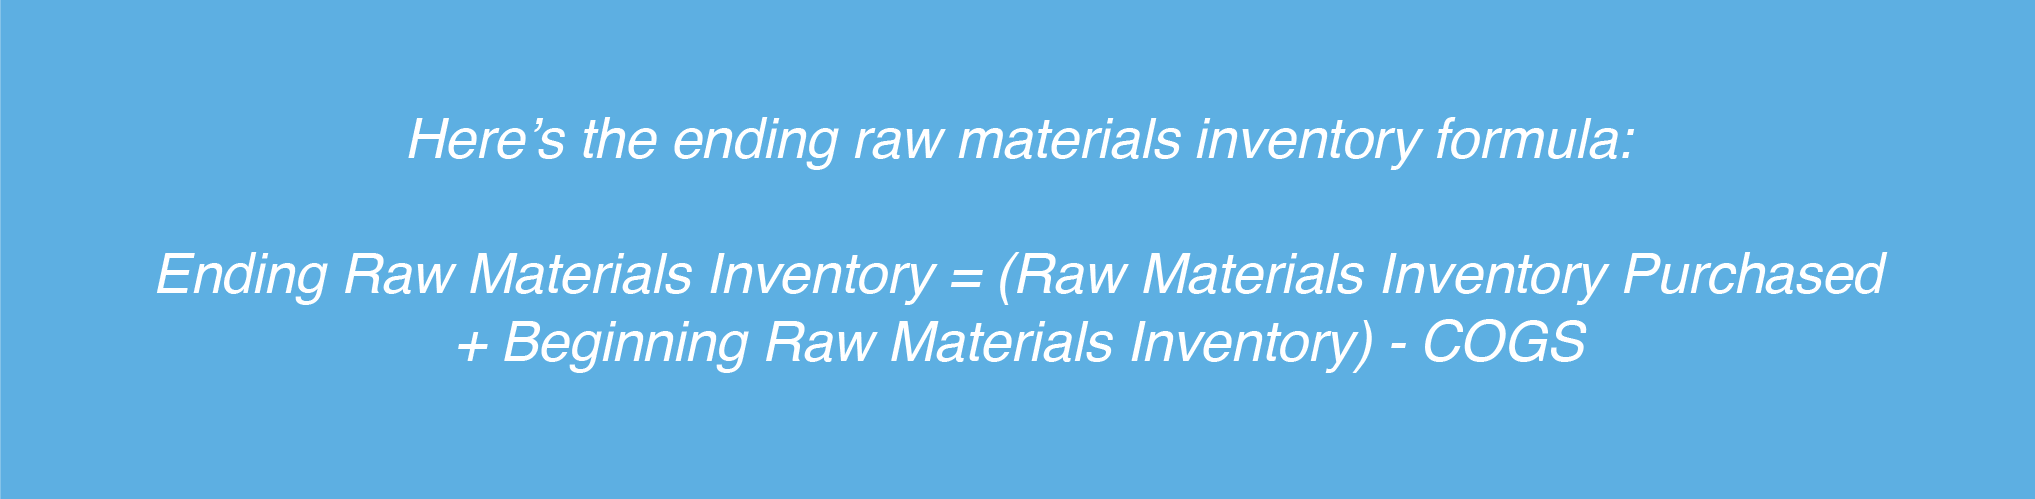 ending raw materials inventory formula